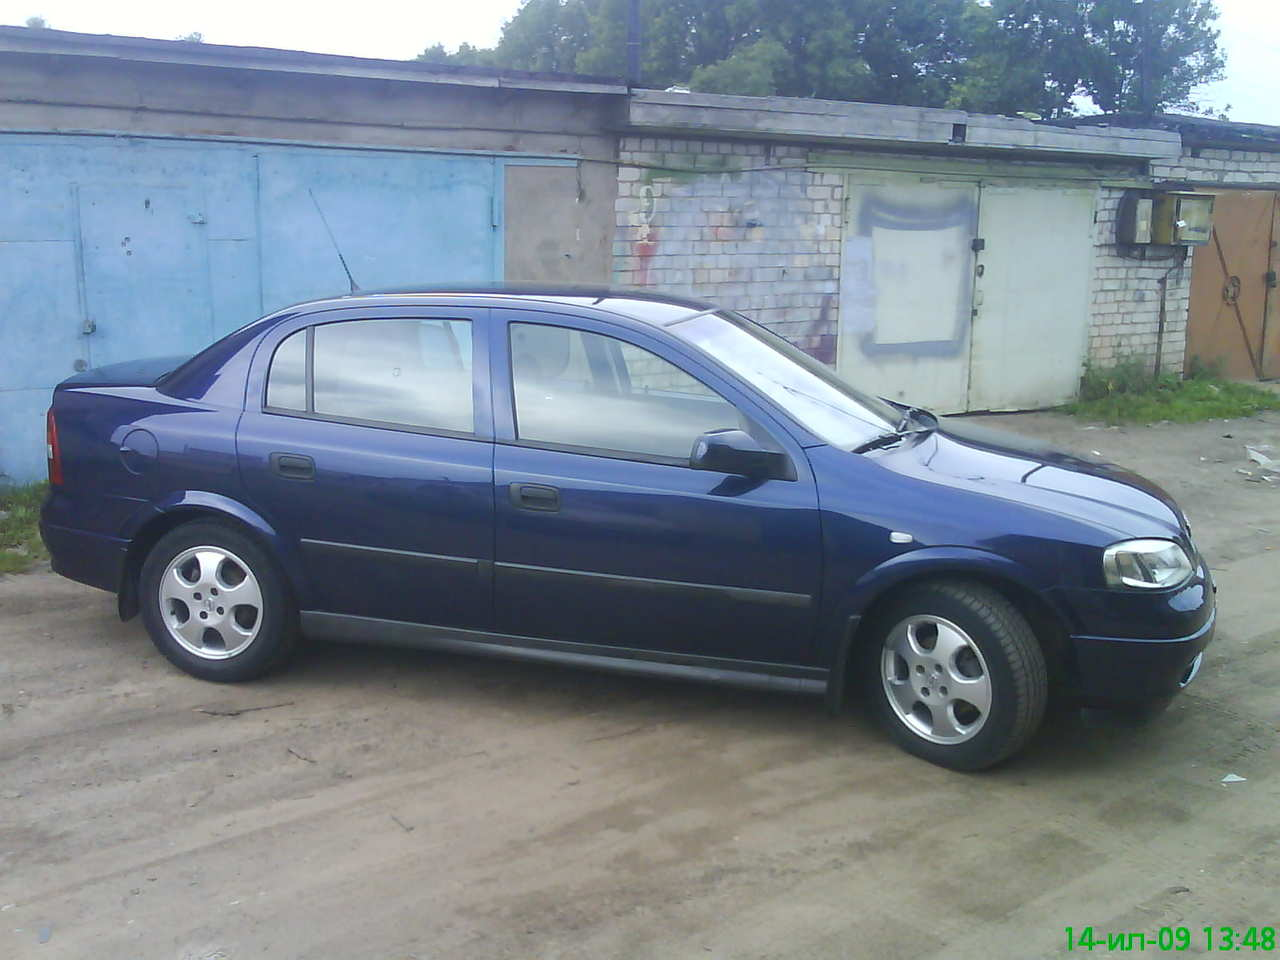 28 vauxhall astra g manual 2001 2001 opel astra pictures 2000cc diesel ff manual for sale. Black Bedroom Furniture Sets. Home Design Ideas